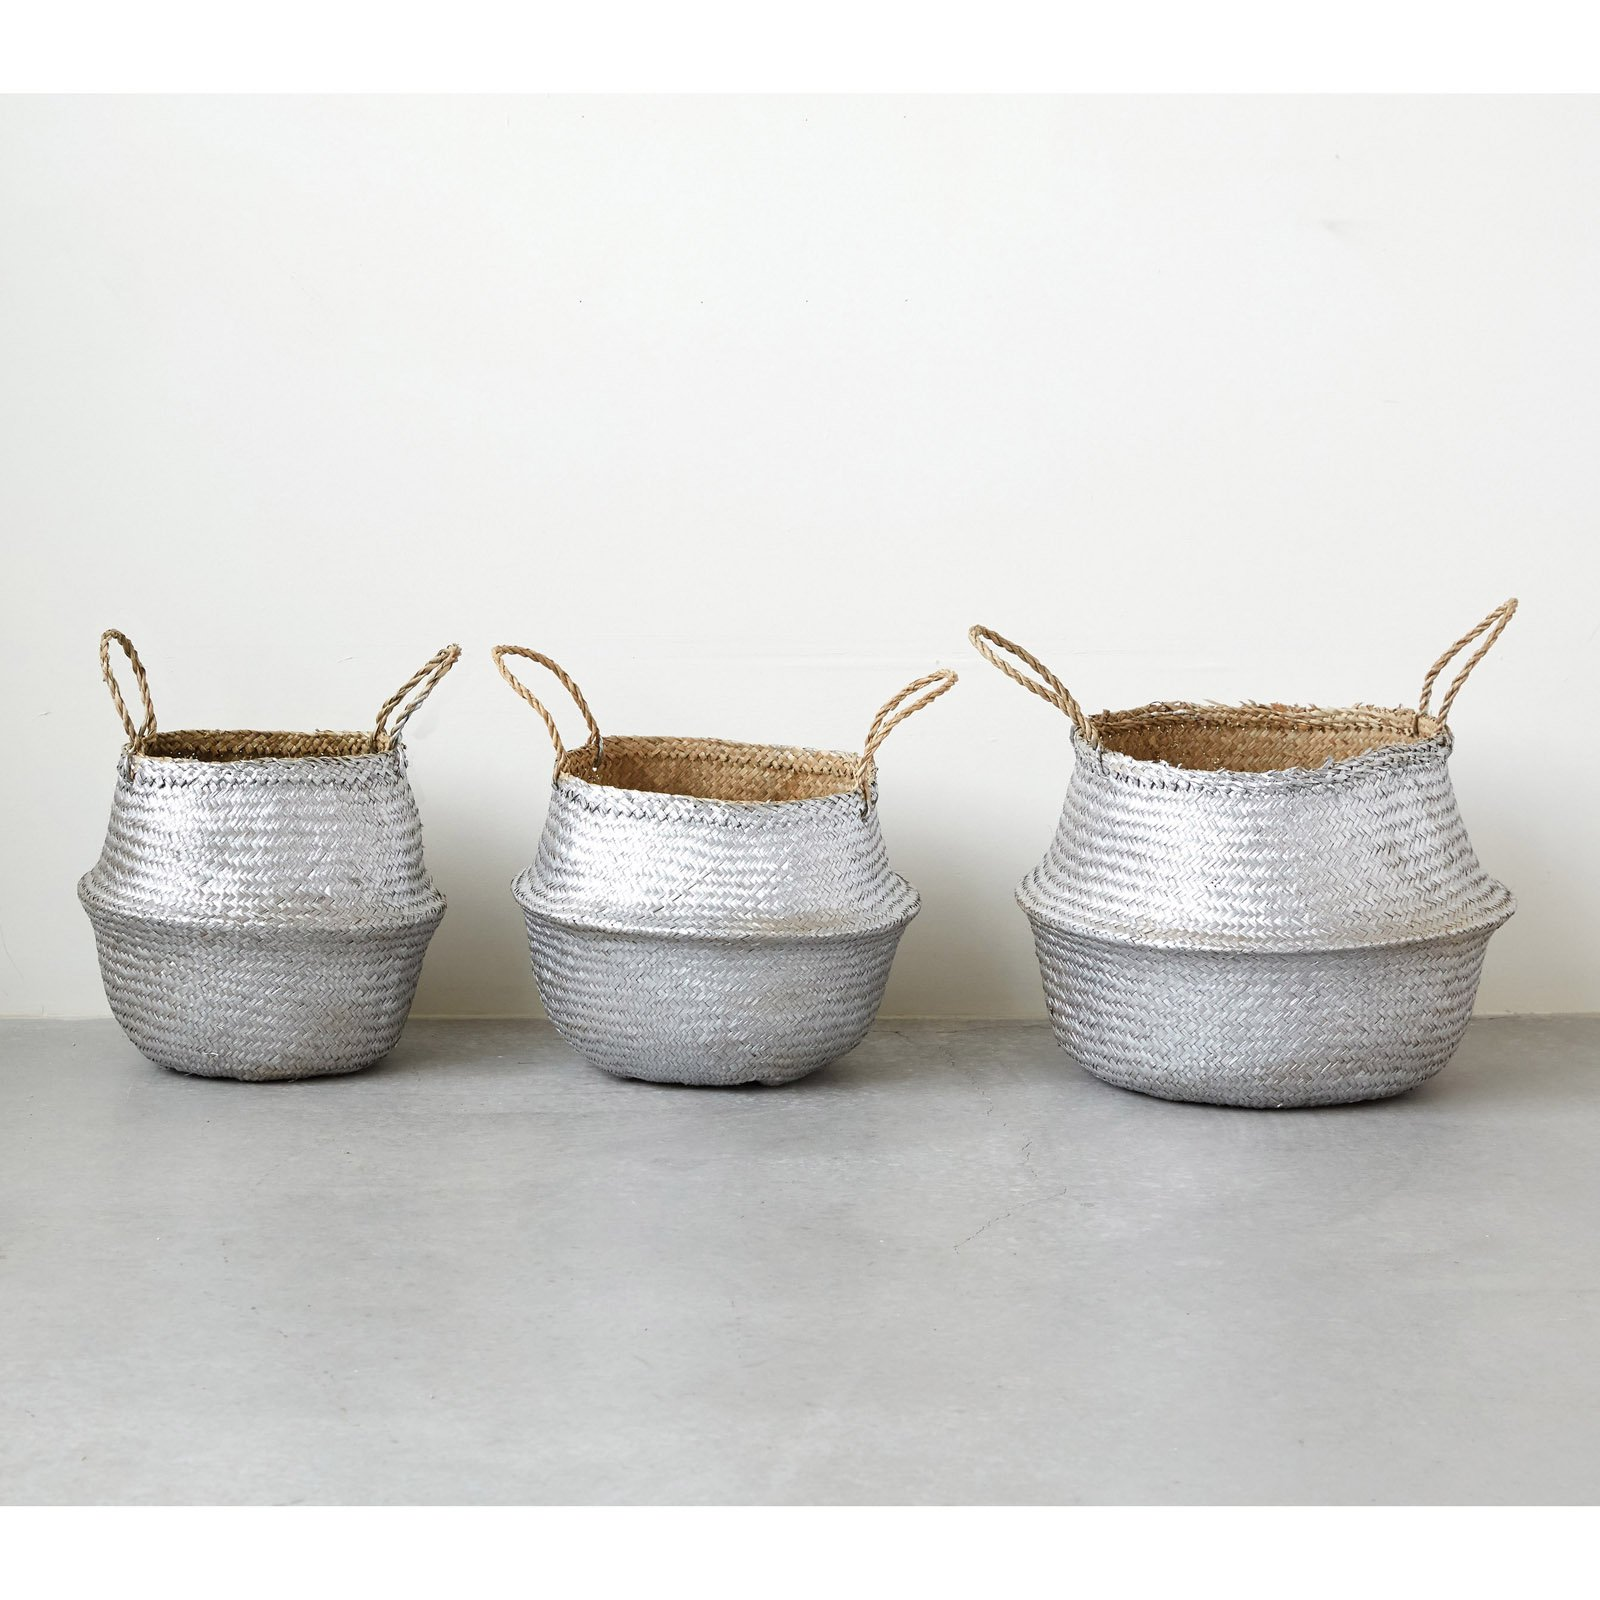 3R Studios Collapsible Seagrass Baskets - Set of 3